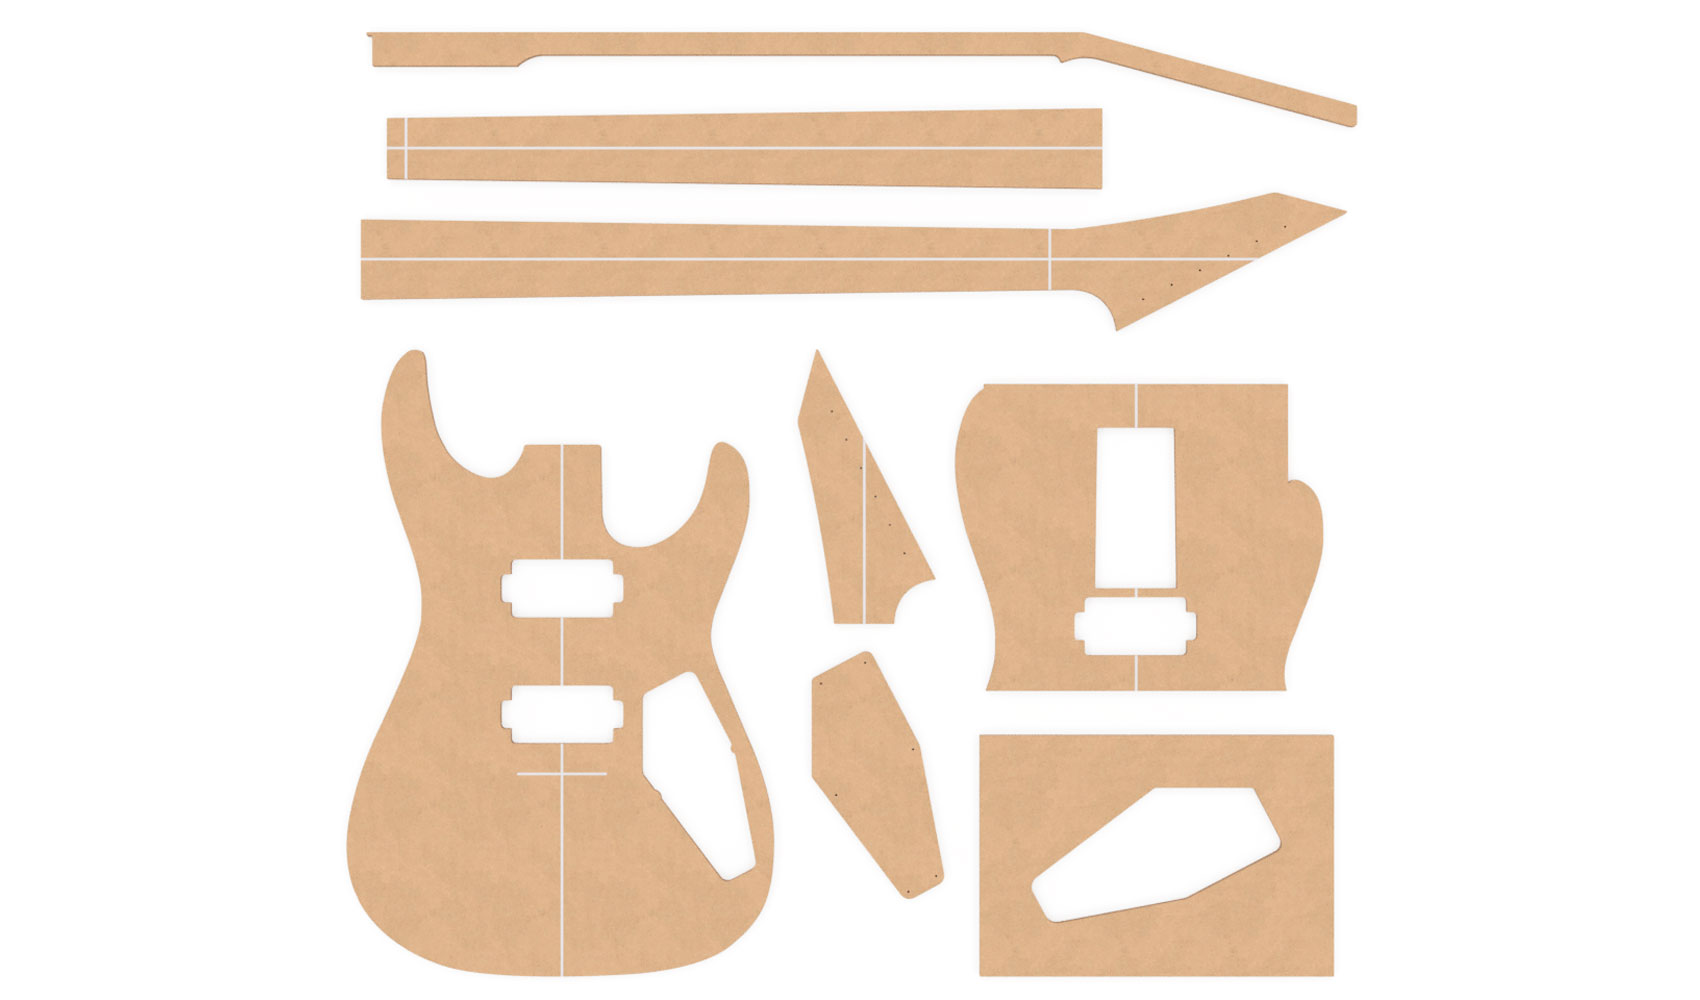 old fashioned floyd rose routing template image